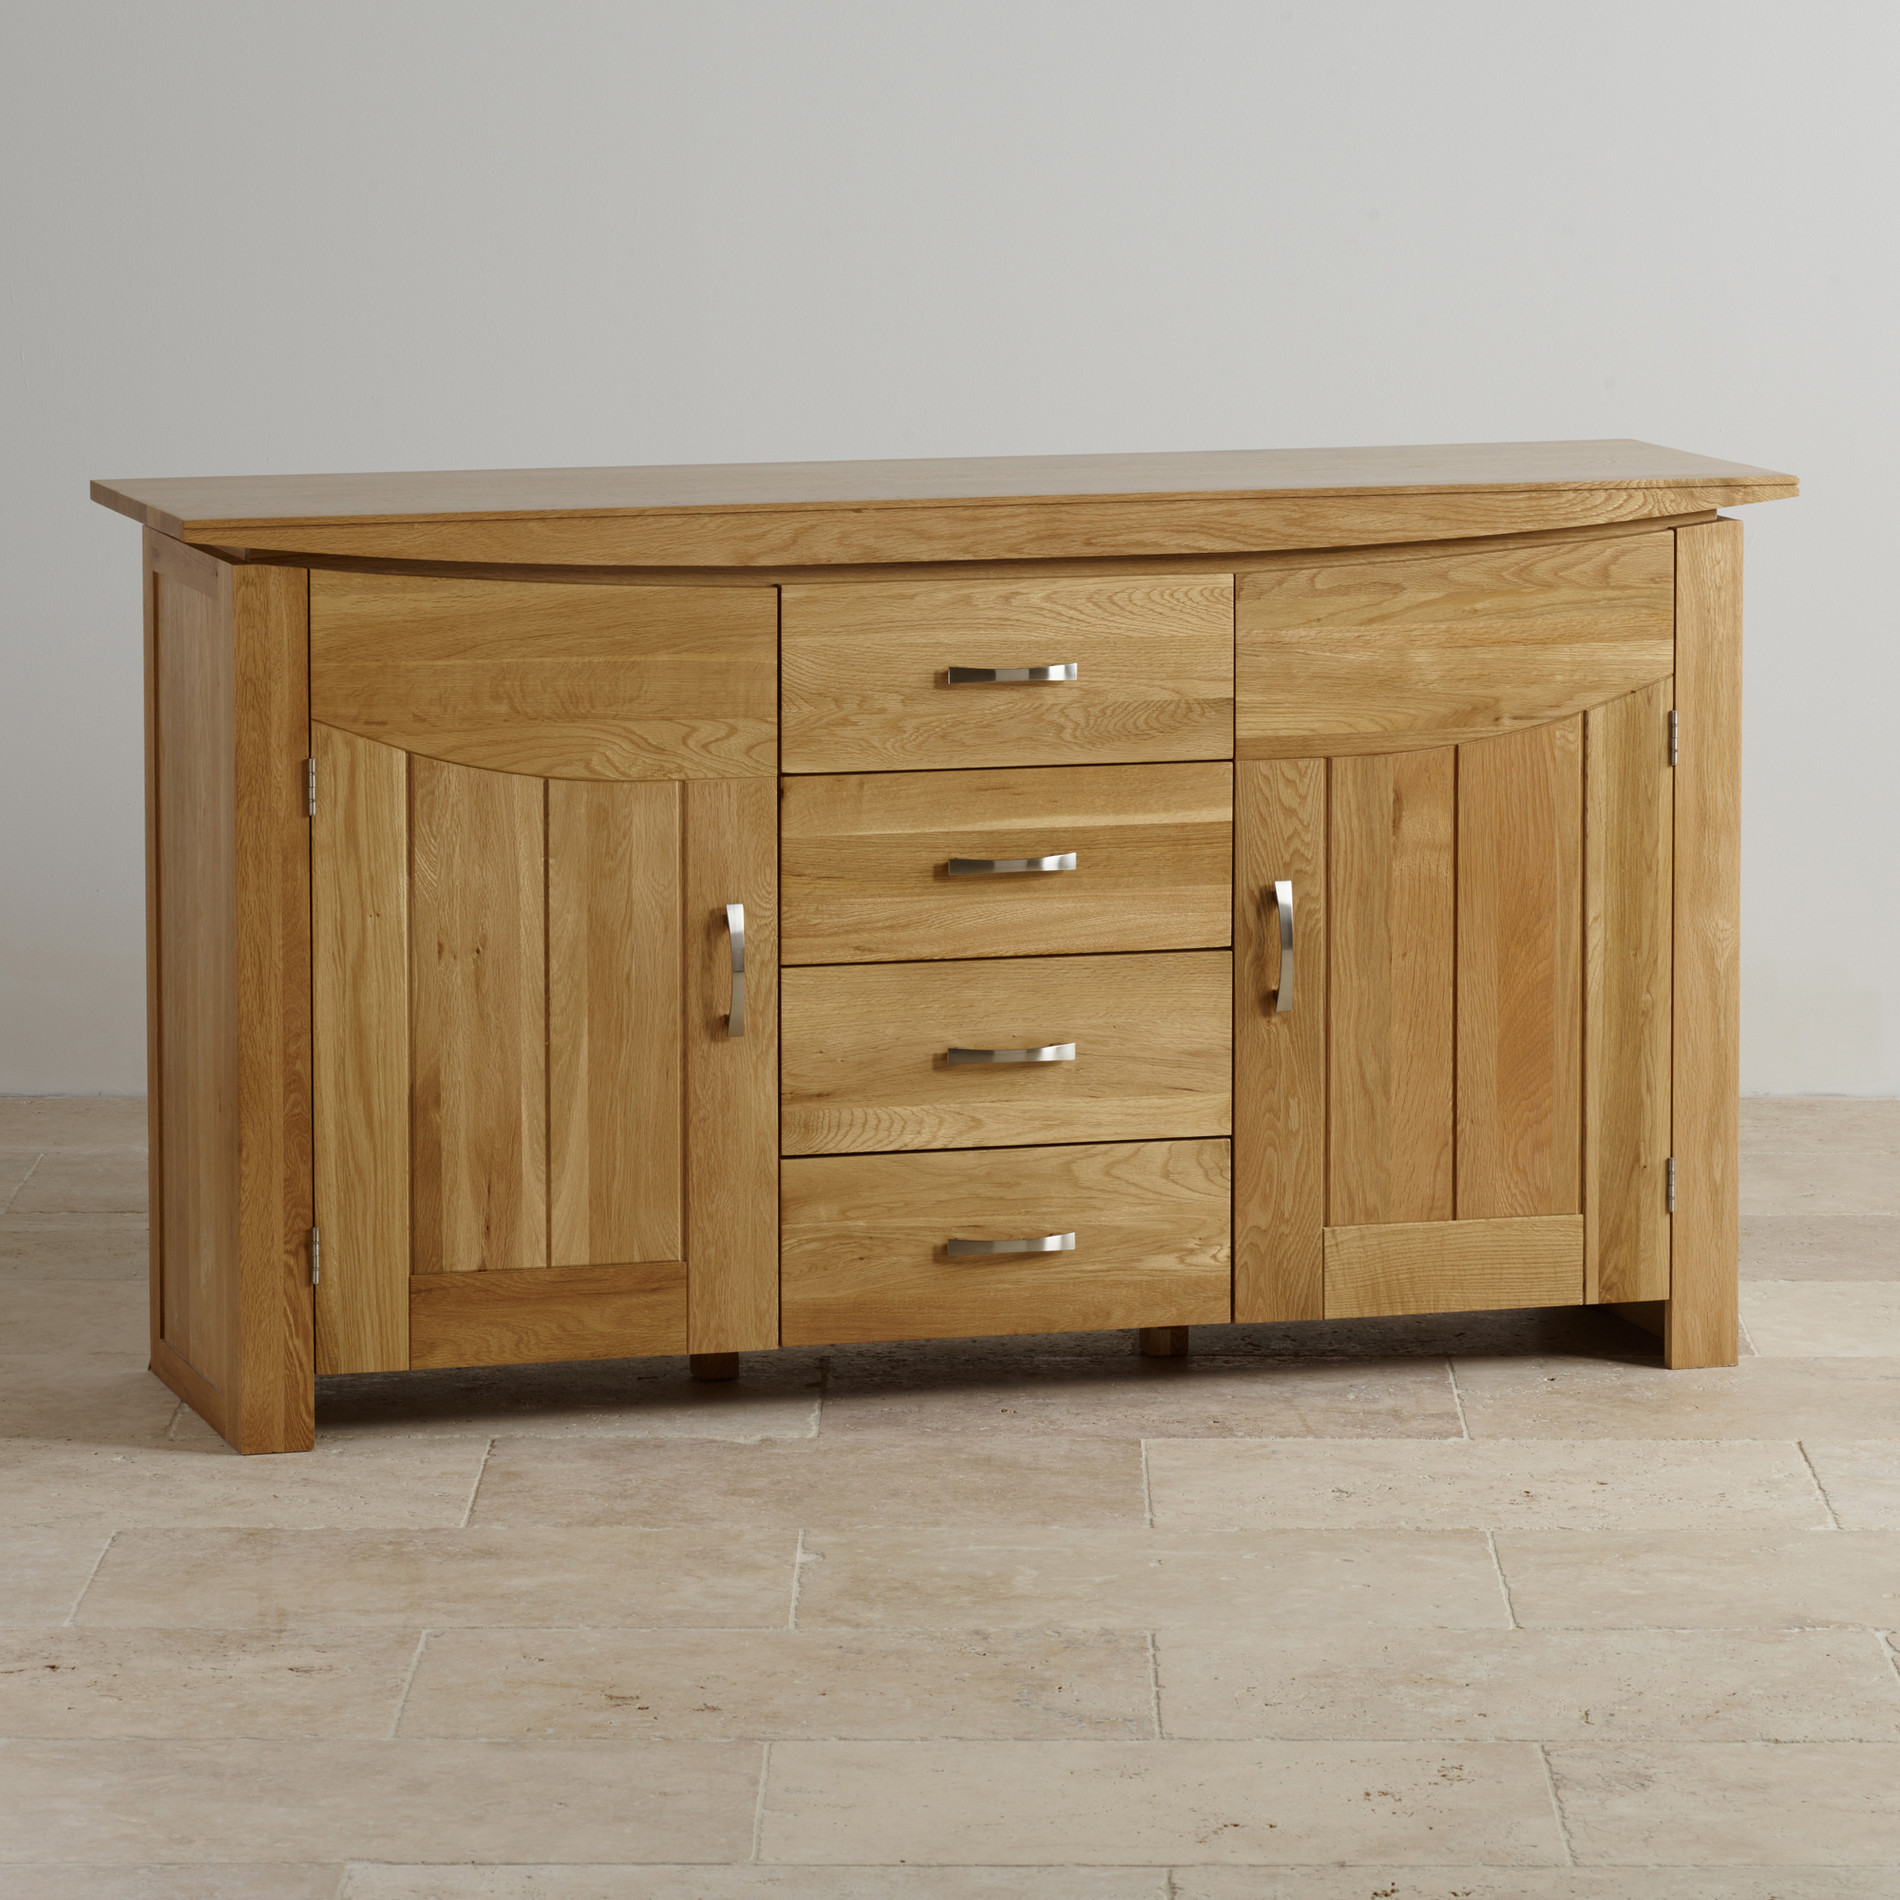 Tokyo large sideboard in natural solid oak furniture